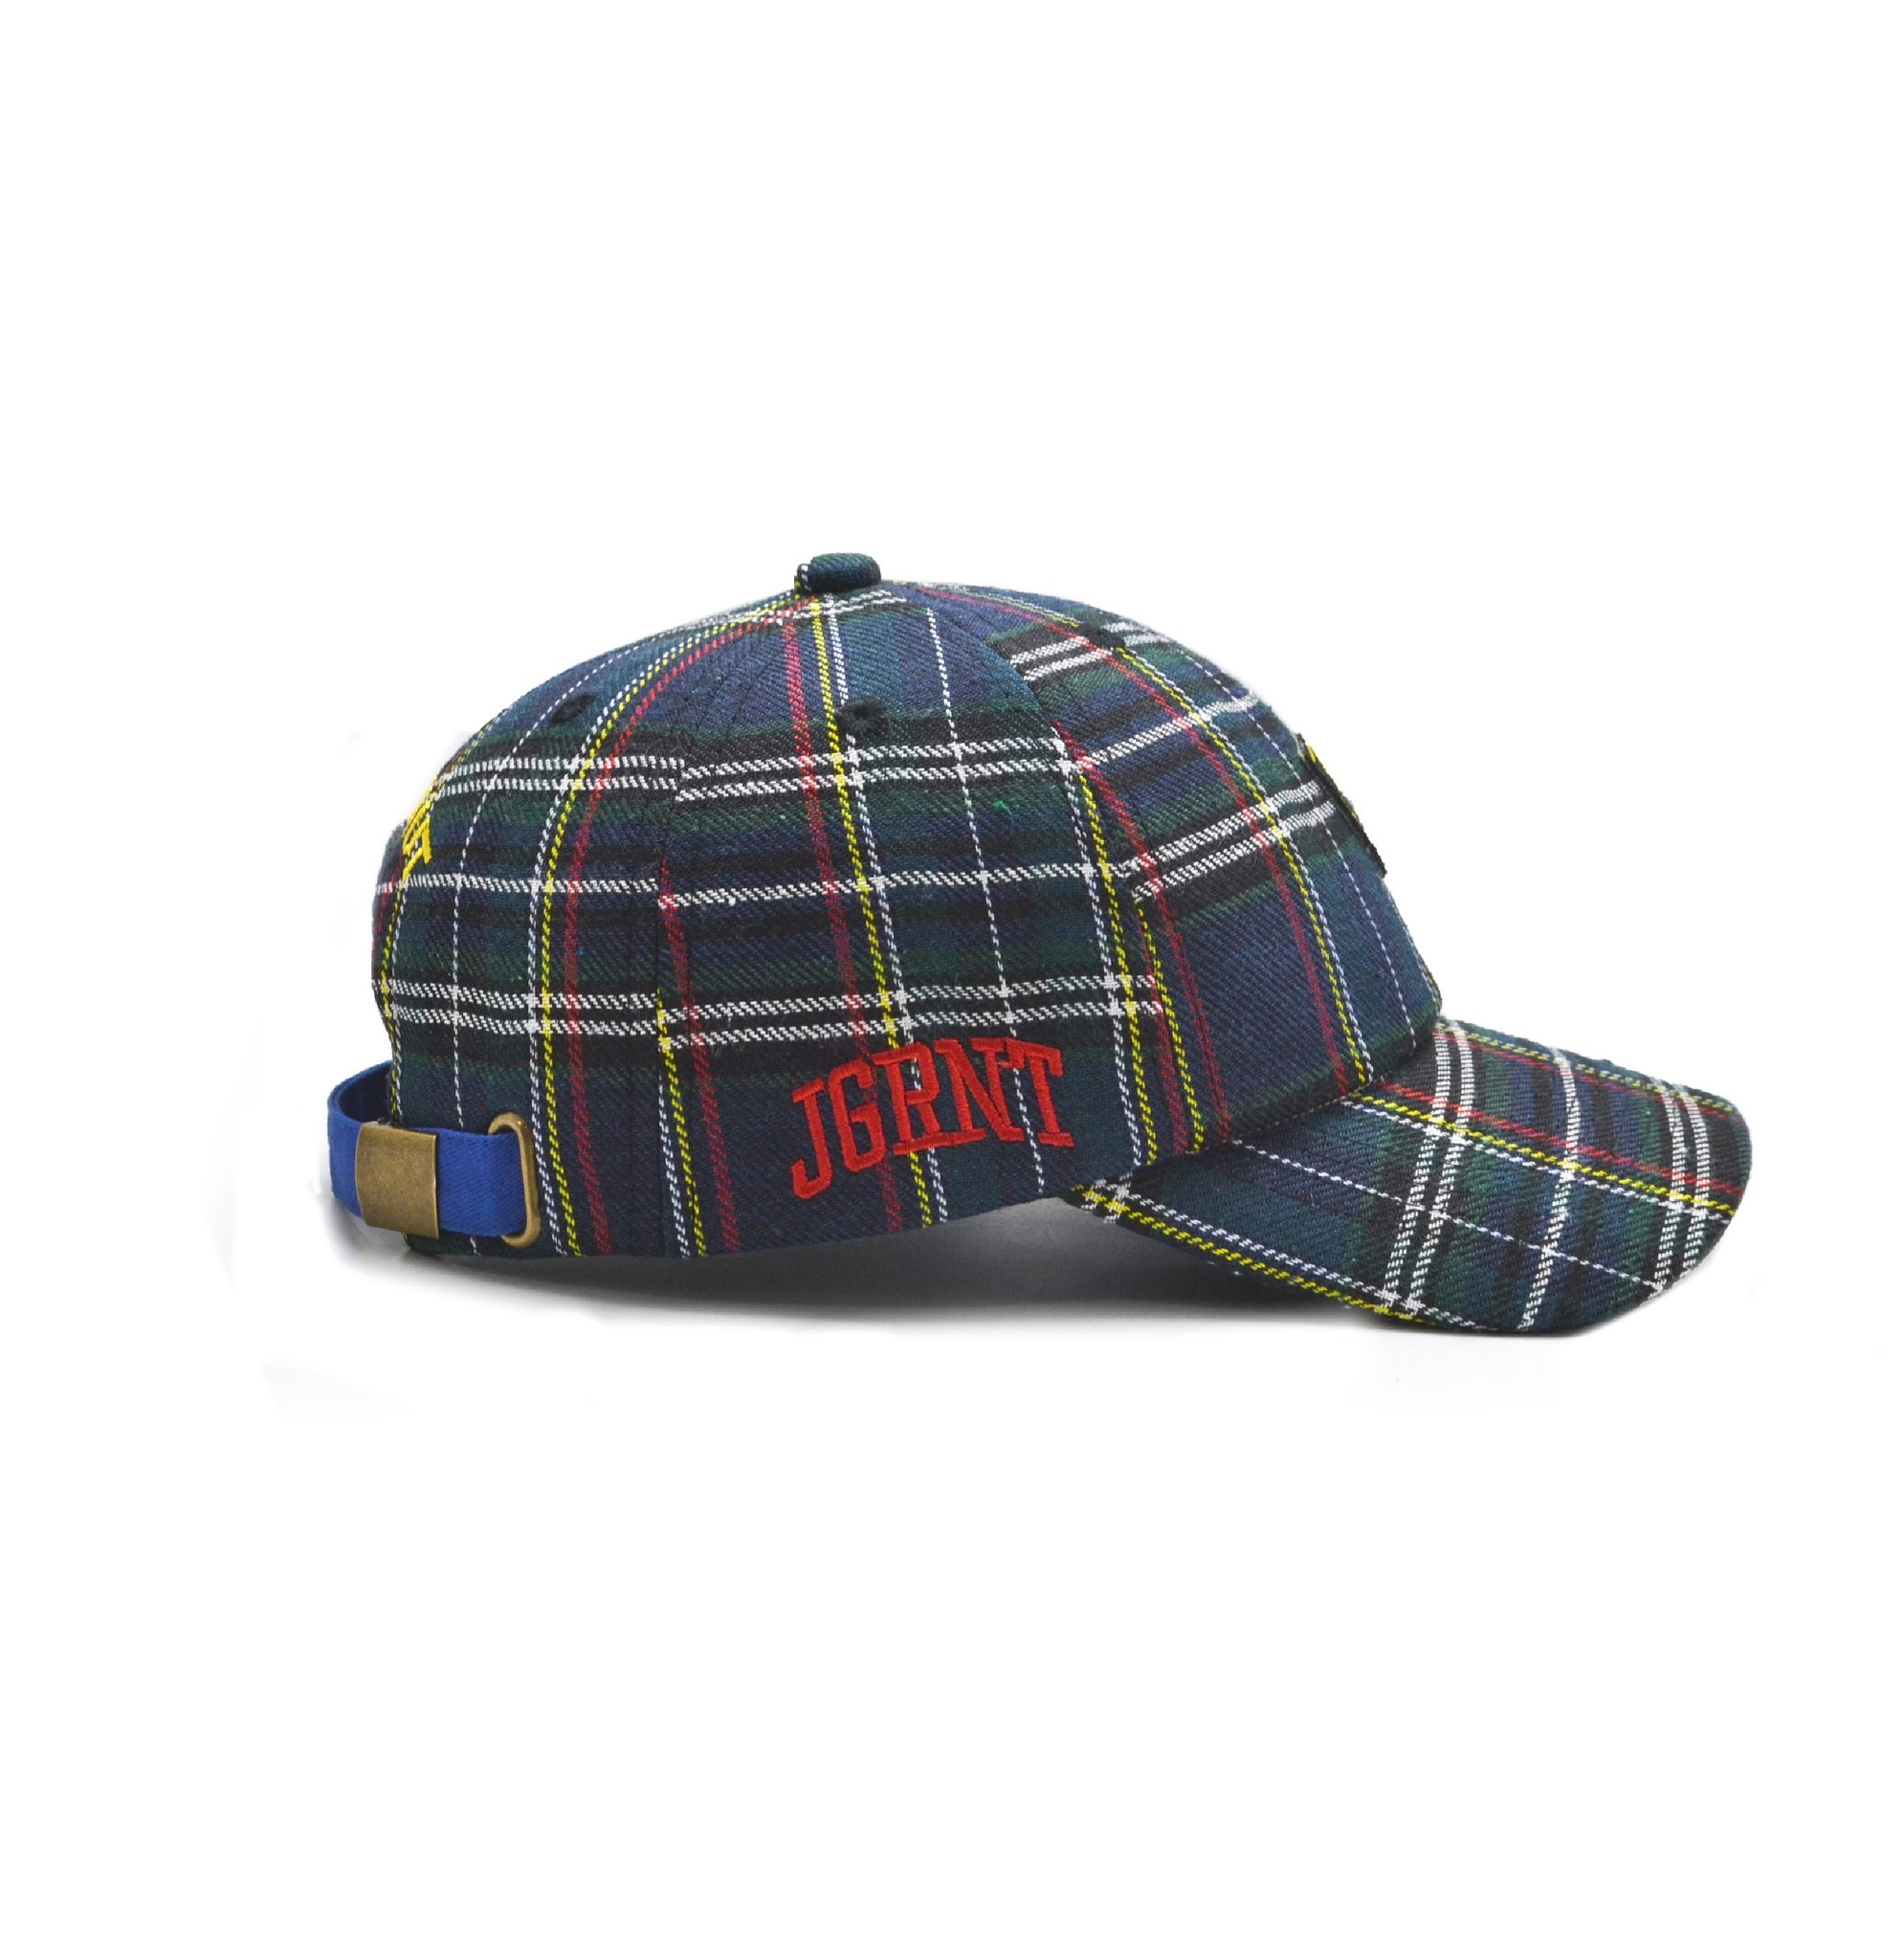 Jugrnaut Jugrnaut Shield Cap Plaid